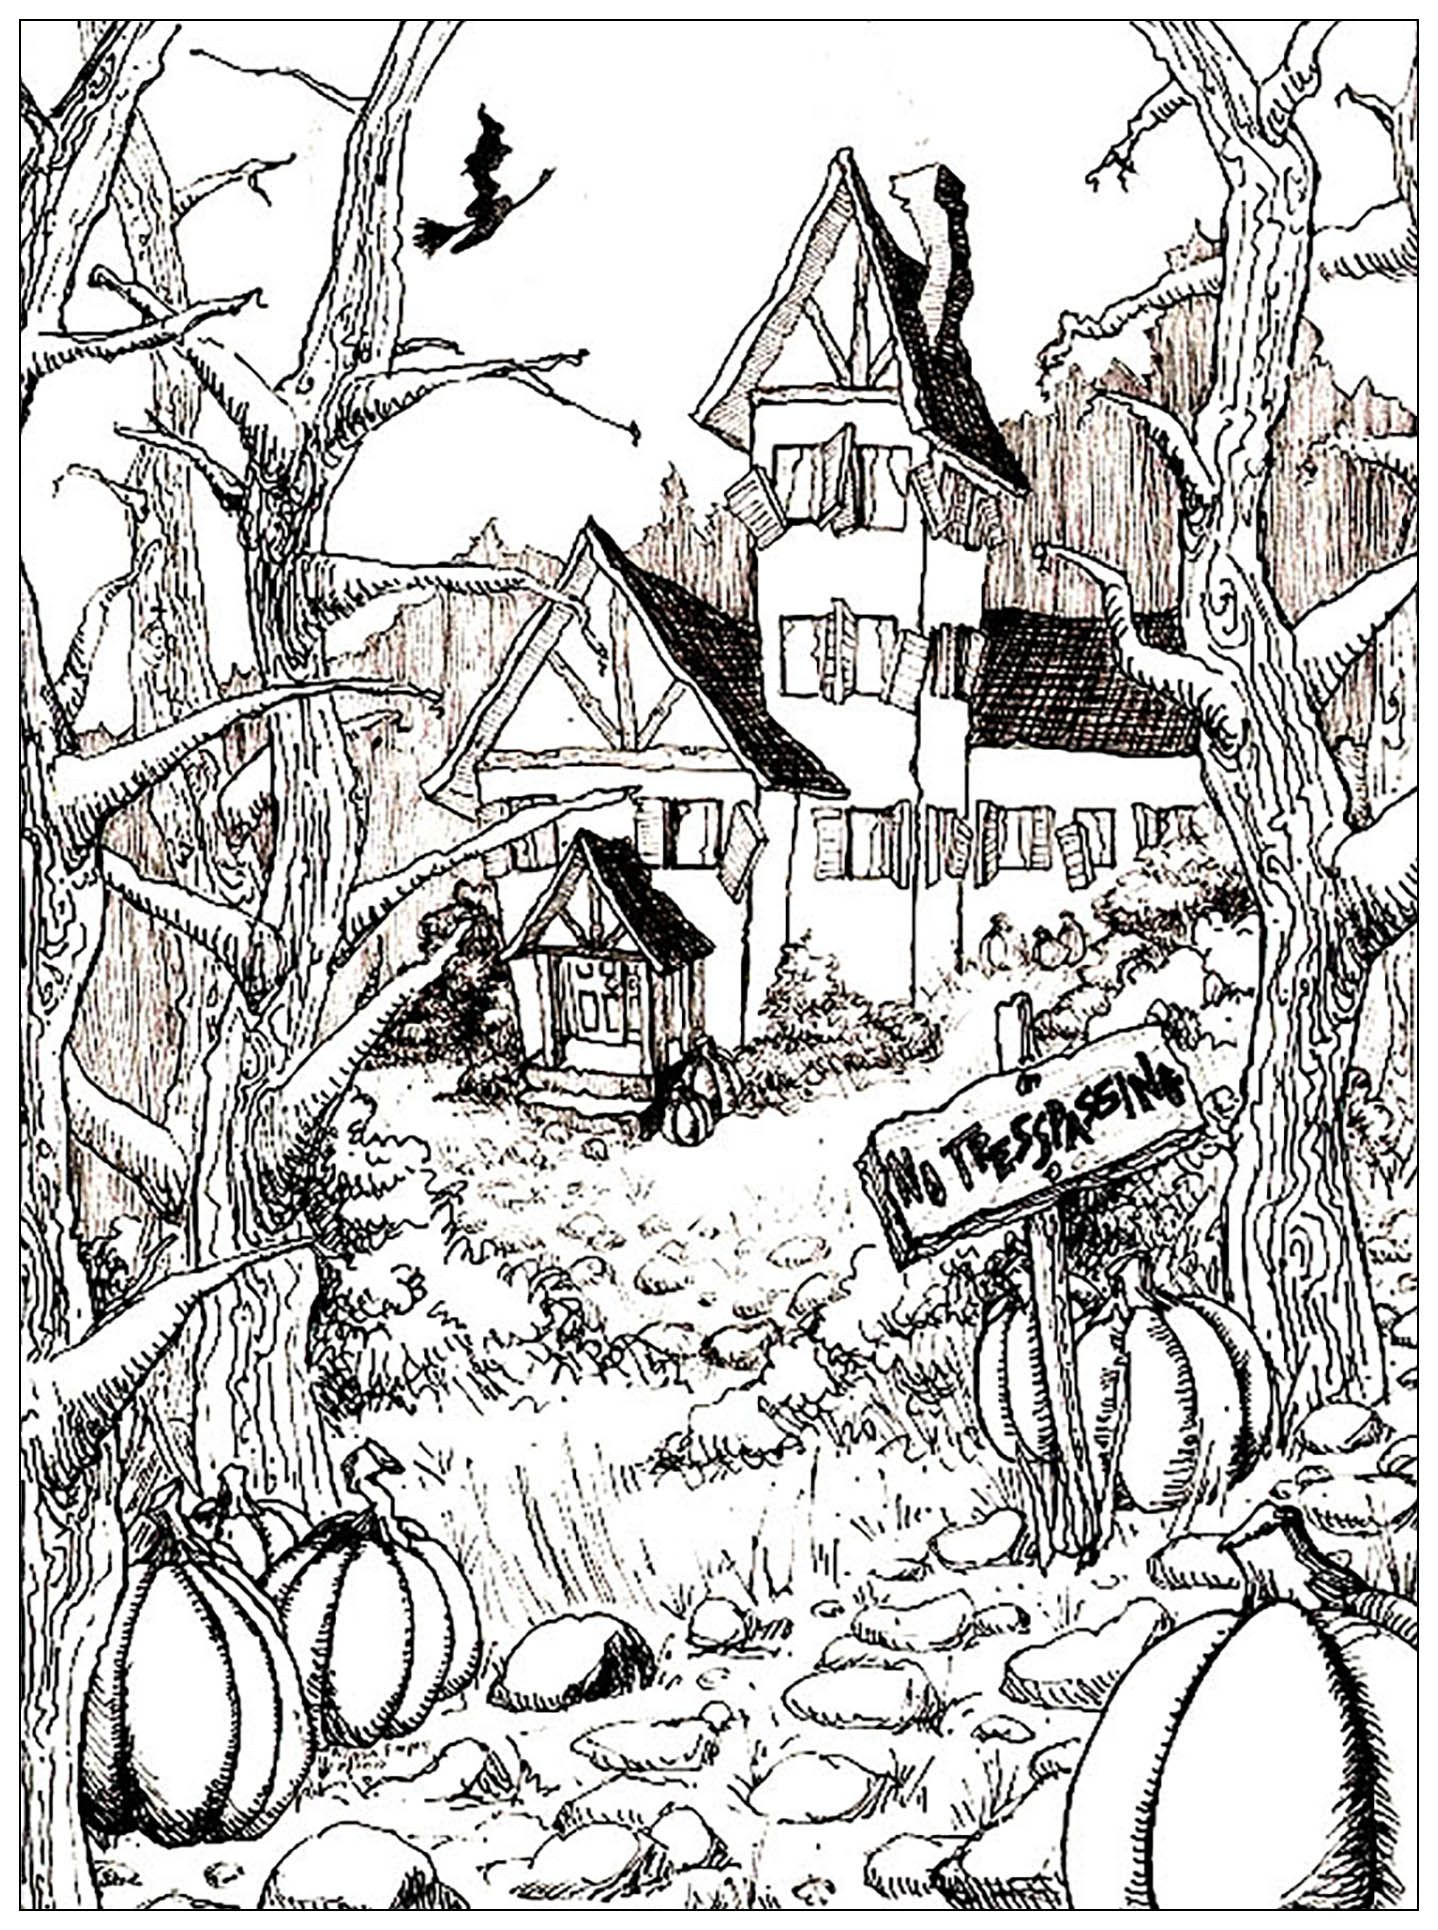 Princess house coloring pages - Free Coloring Page Coloring Halloween Difficult On The Theme Of Halloween Here Is A Very Rich Draing Of A Haunted House At The Bottom Of A Garden Full Of